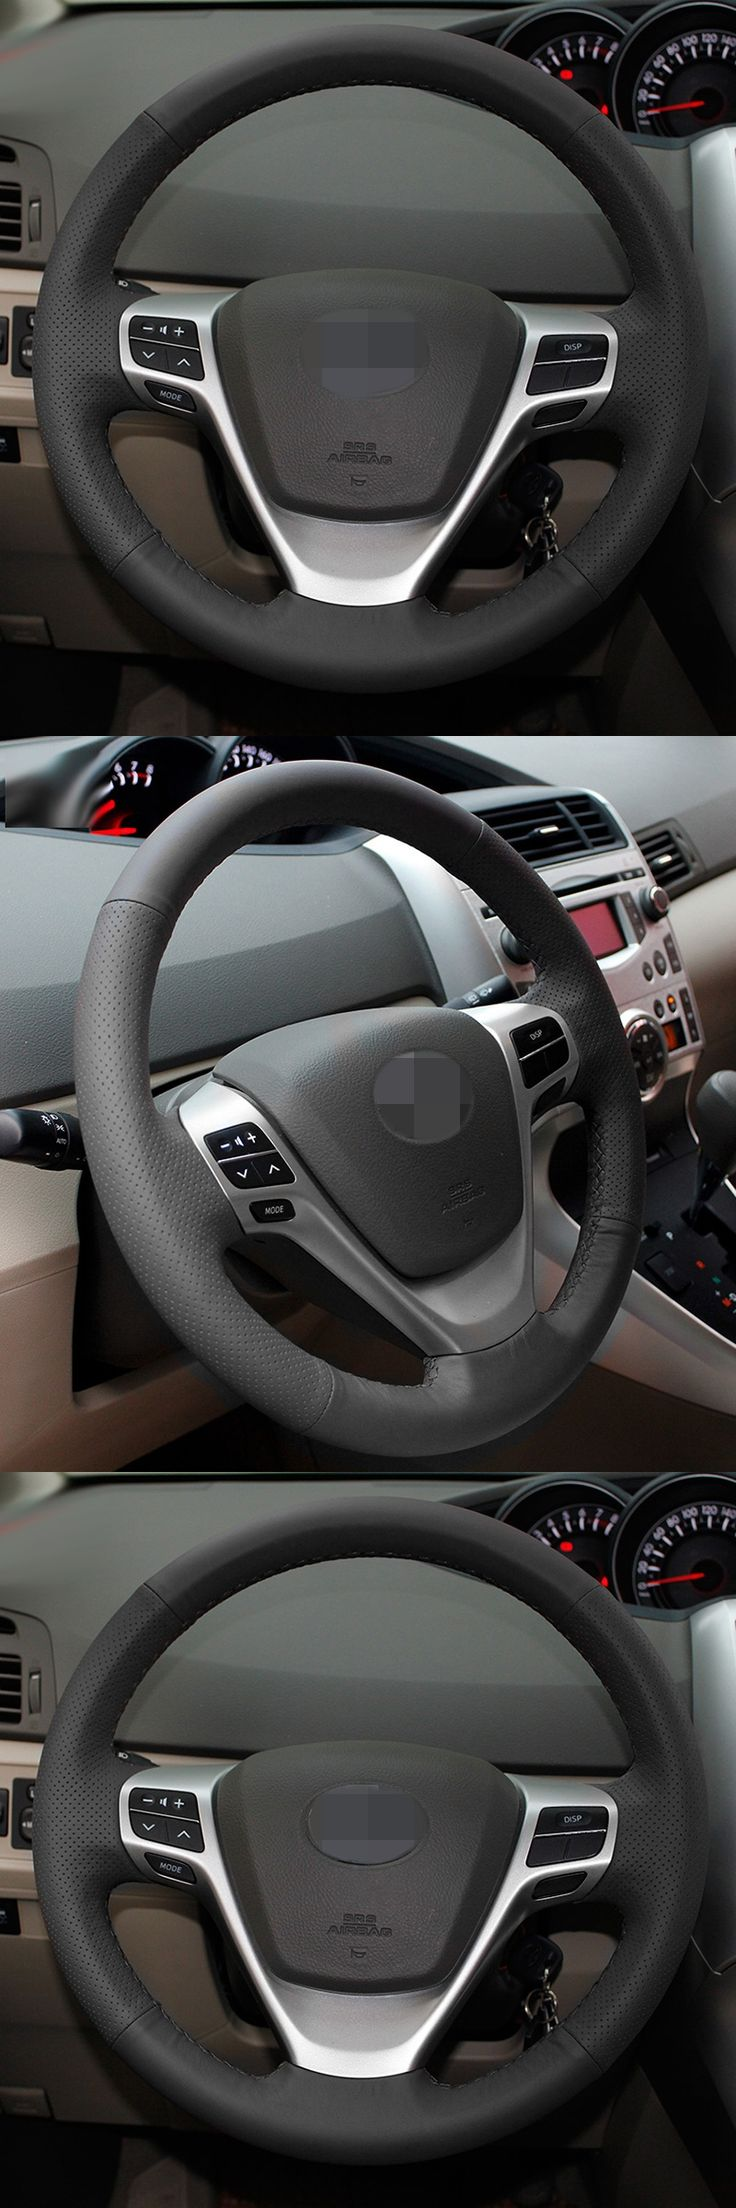 BANNIS Black Artificial Leather DIY Hand-stitched Steering Wheel Cover for Toyota Verso EZ Avensis